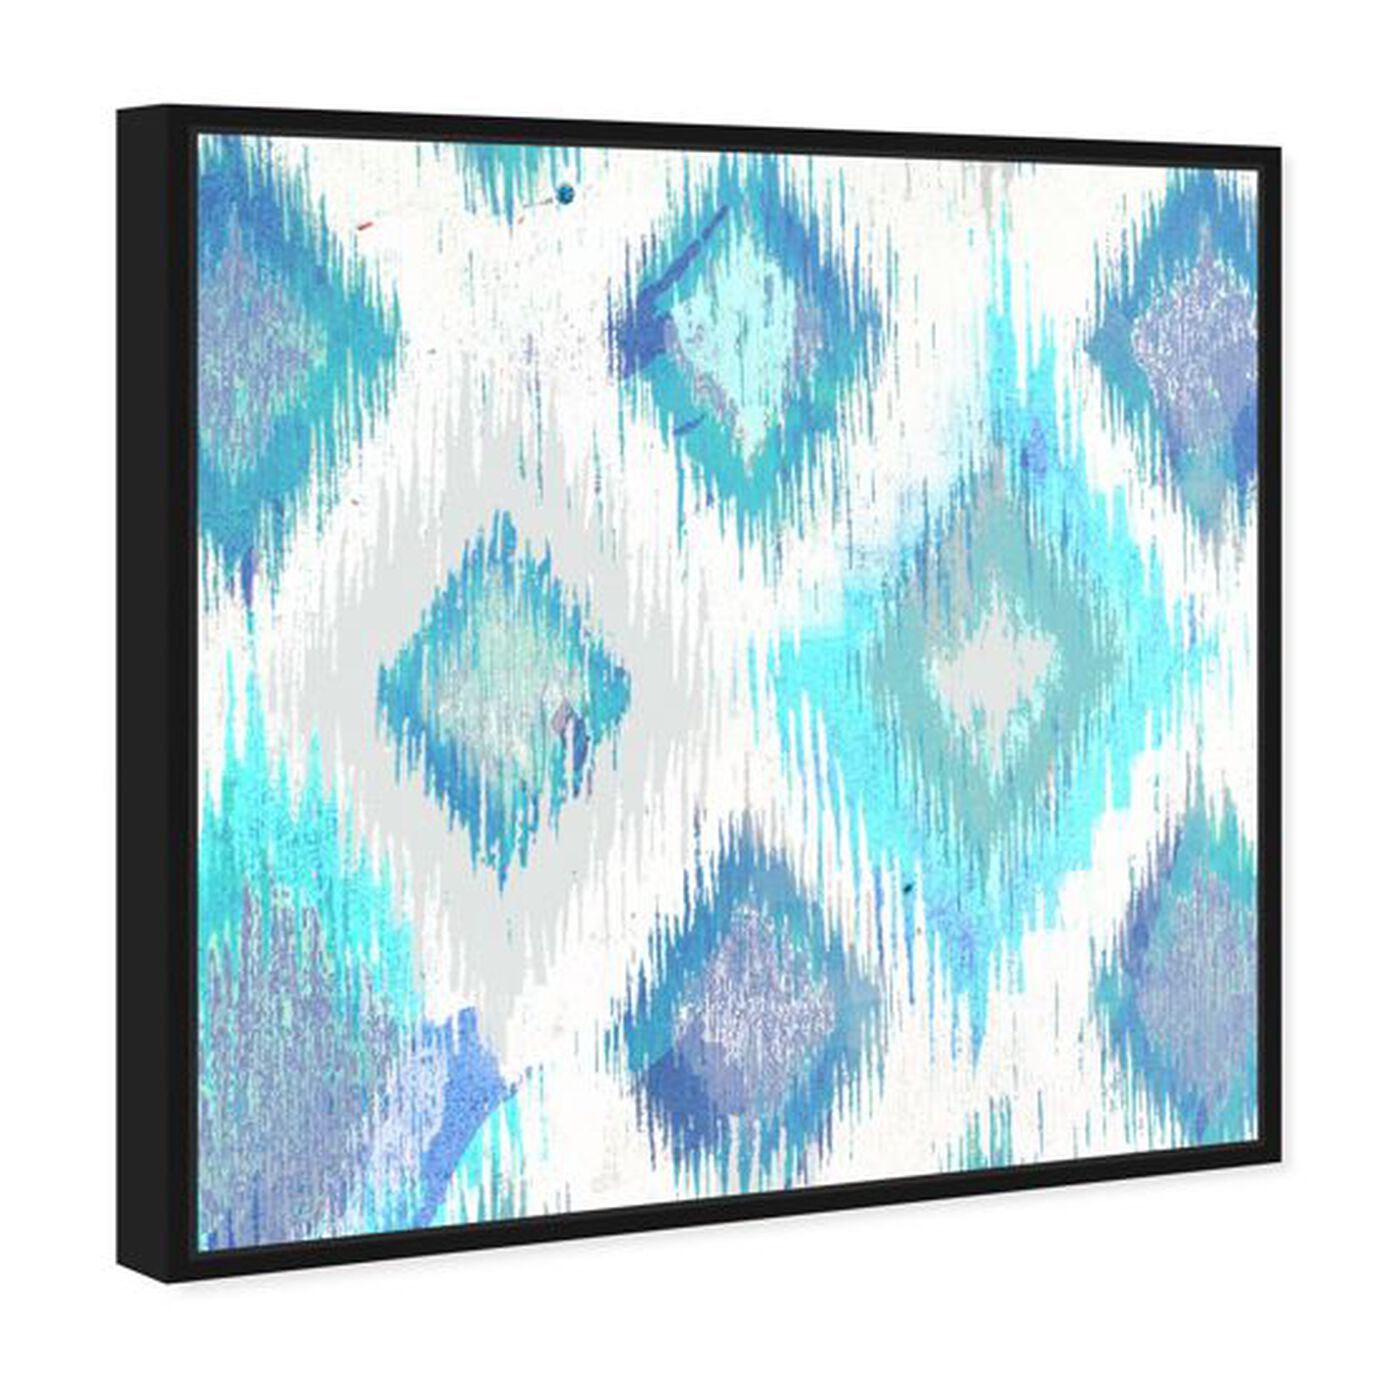 Angled view of Del Mar featuring abstract and geometric art.